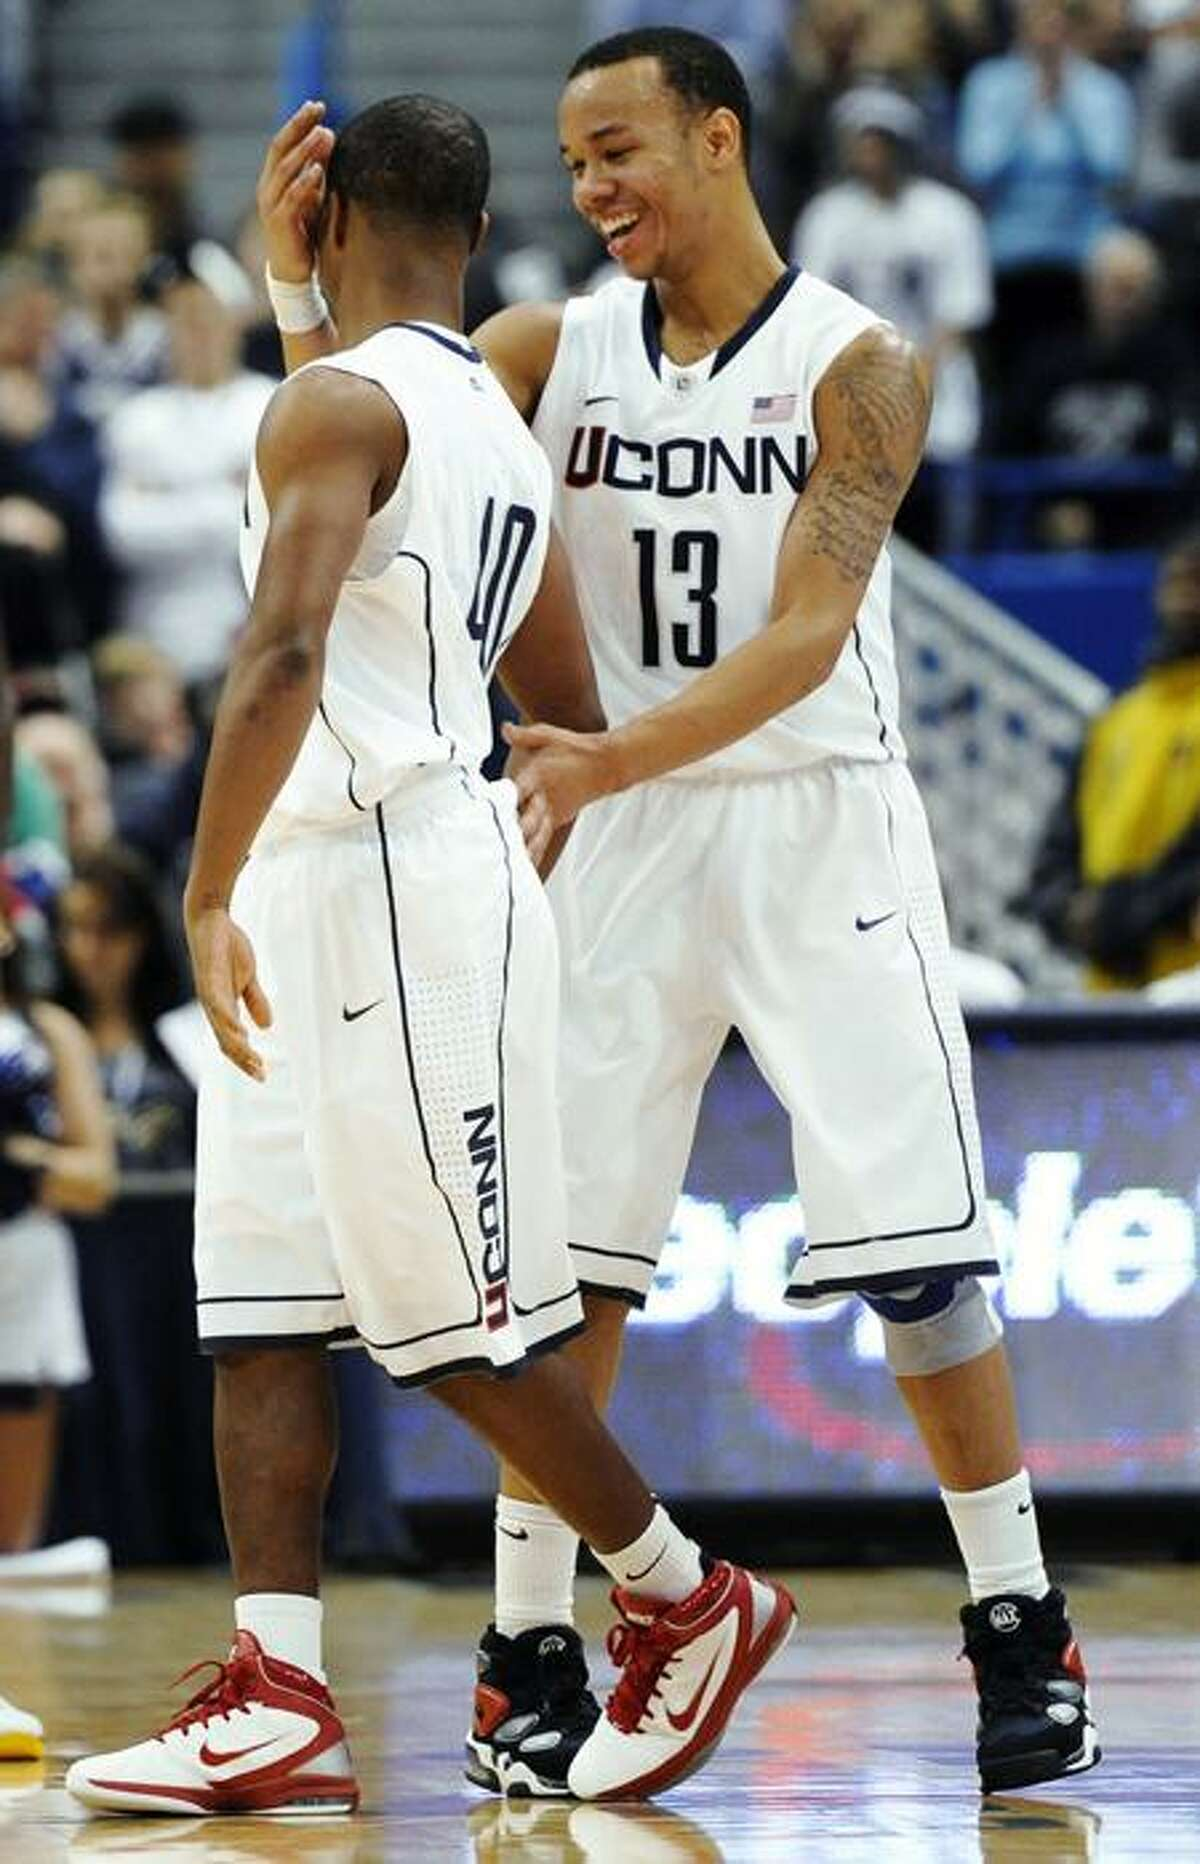 Connecticut's Shabazz Napier, right shares a moment with Connecticut's Ethan Waite, left, in the final minutes of an NCAA college basketball game against St. John's in Hartford, Conn., Saturday, Dec. 31, 2011. Connecticut won 83-69. (AP Photo/Jessica Hill)